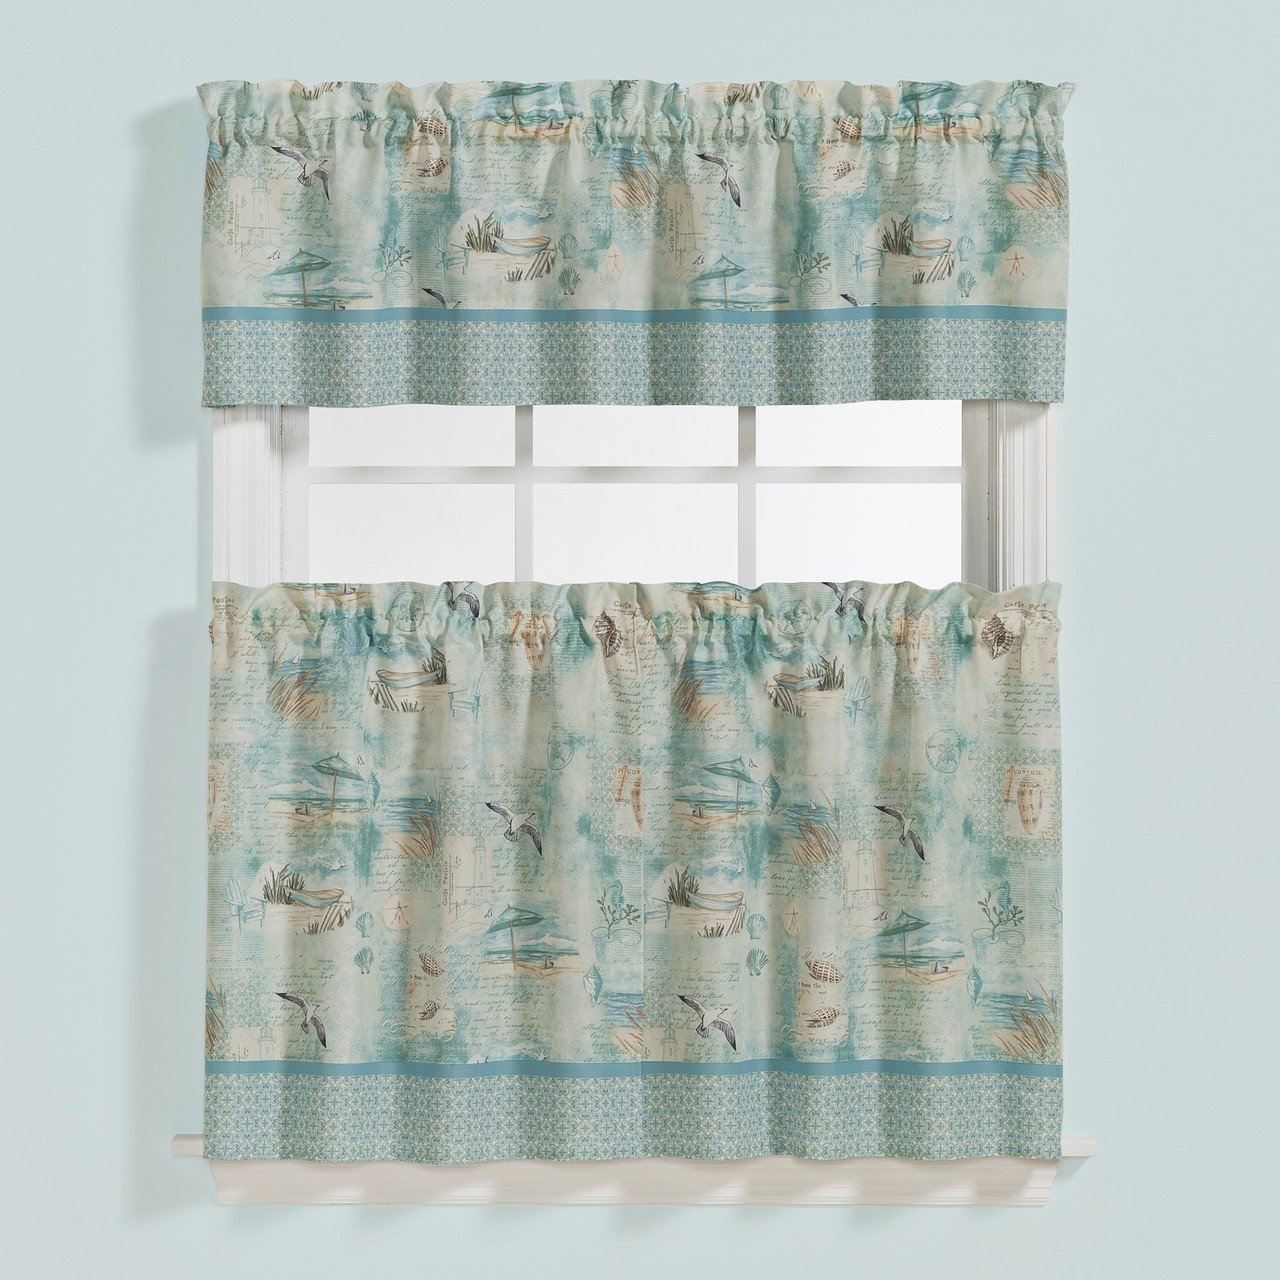 fantastic of window style size enthrall seashell nautical themed beach with winsome enchanting and valances ocean living valance intrigu kitchen inspired full theme treatments seaside coastal gripping curtains blinds beachy lighthouse